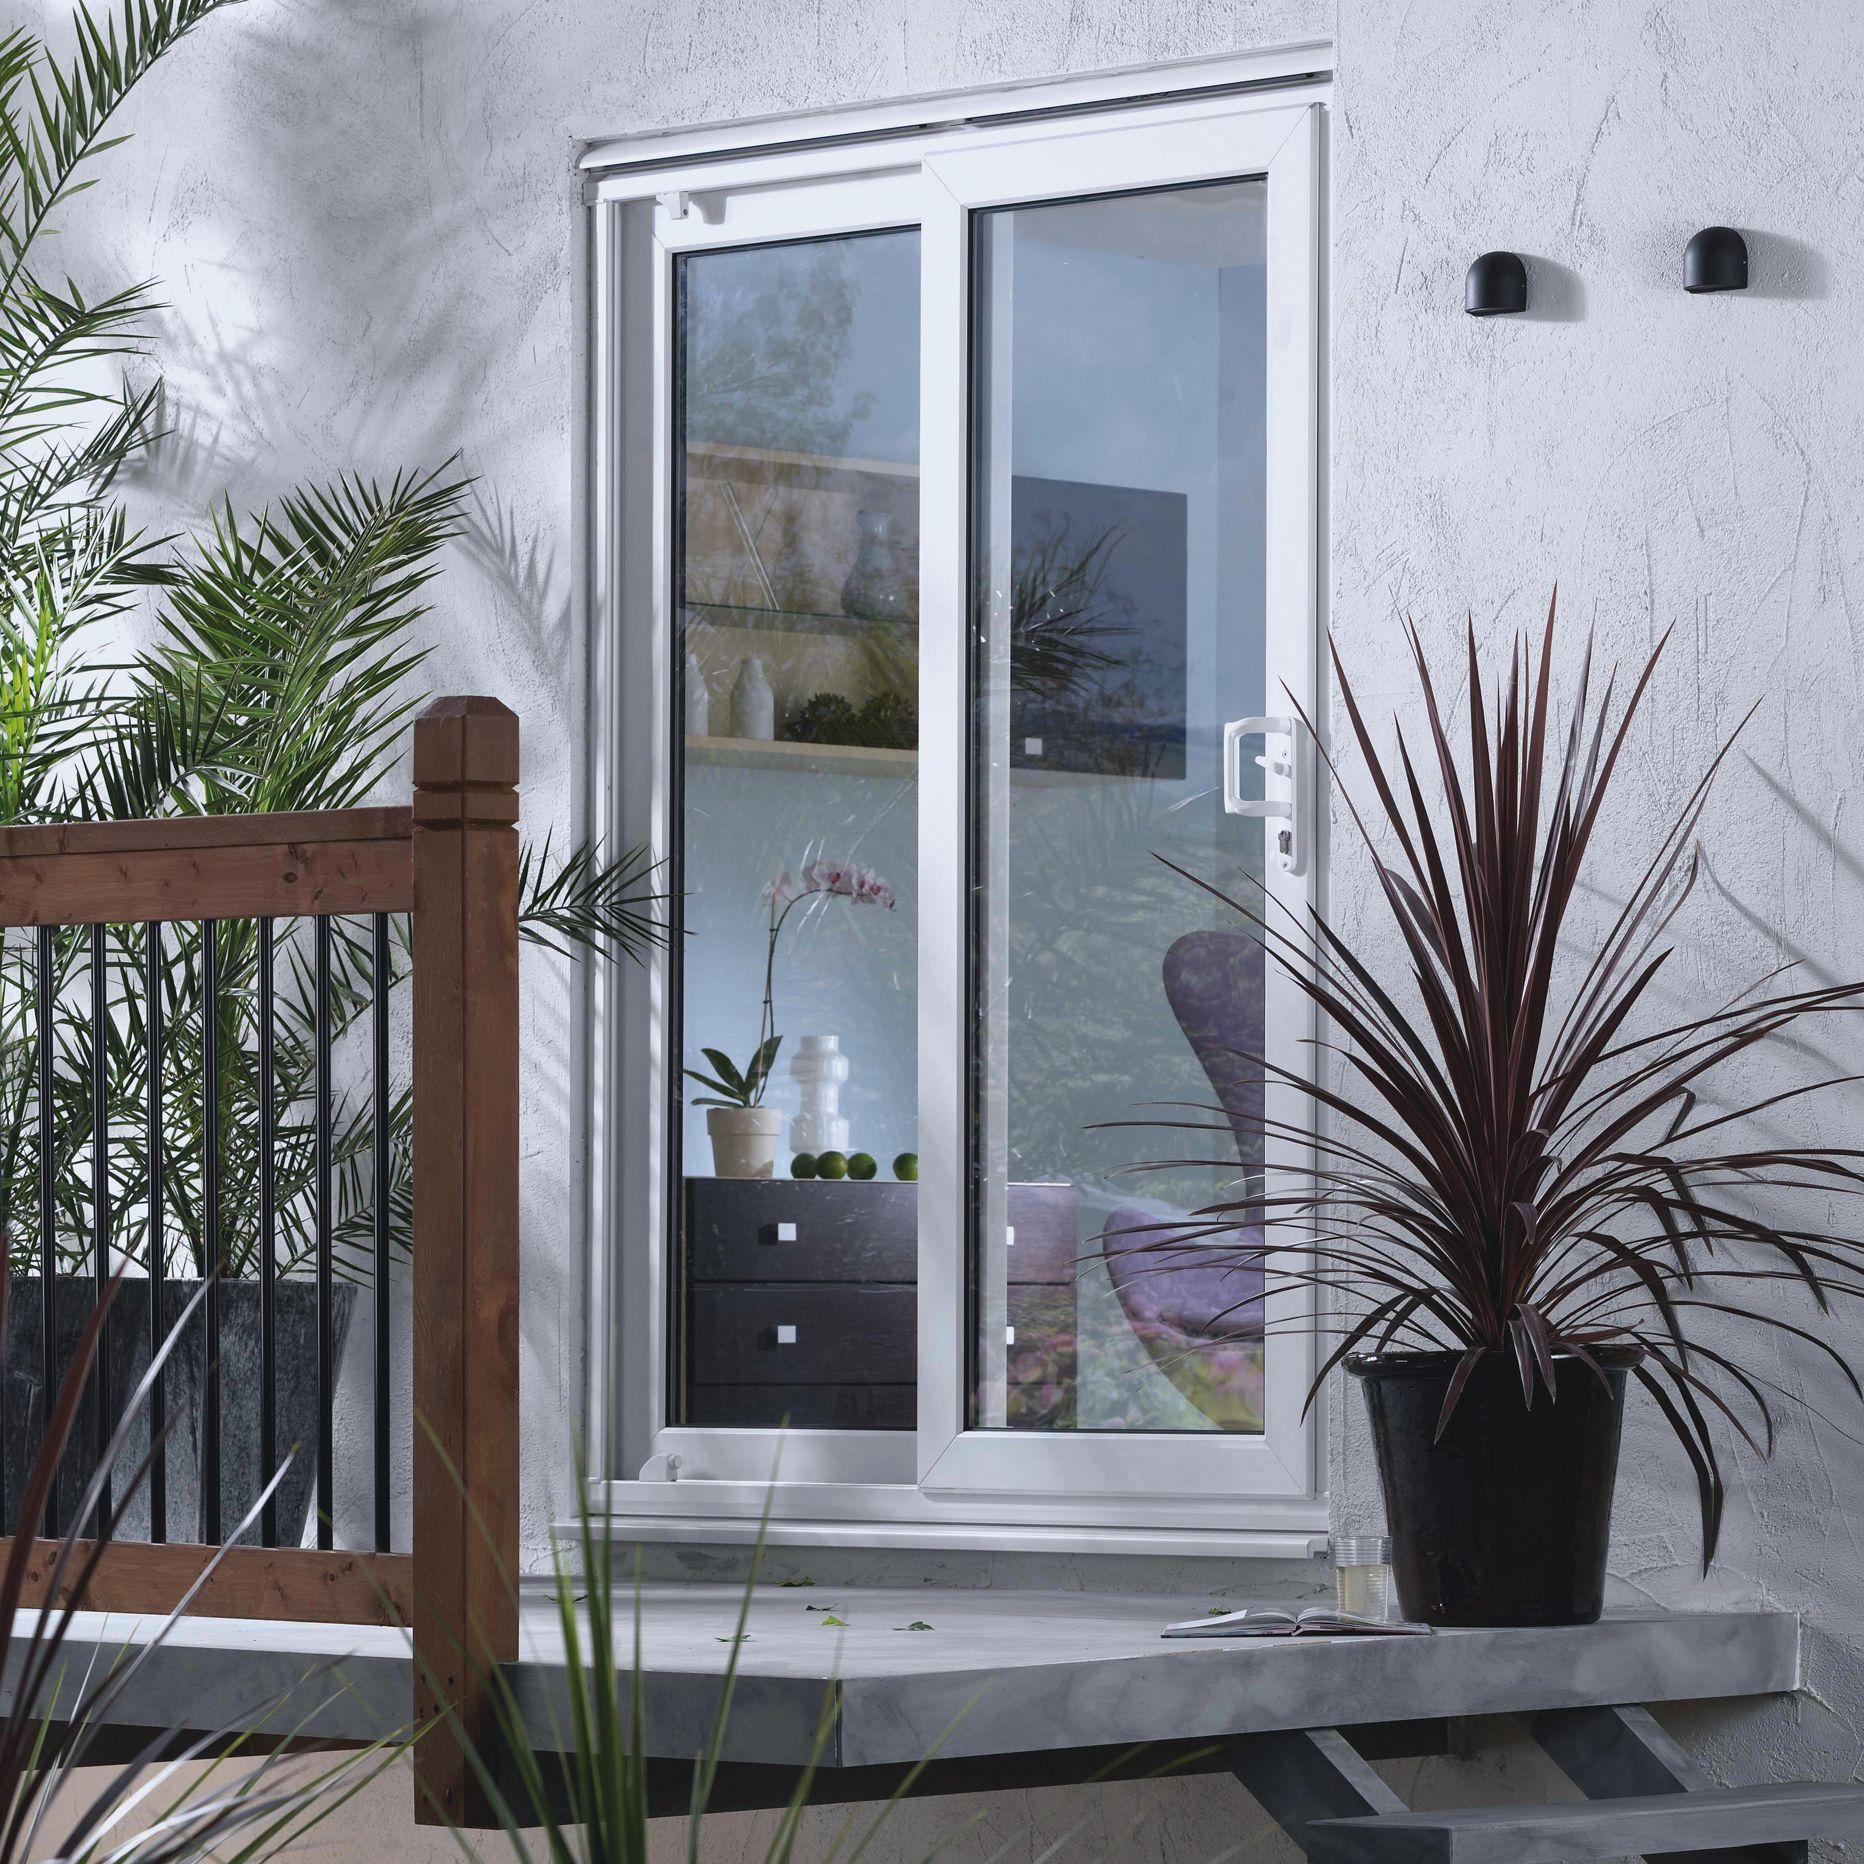 6ft White PVCu Patio Patio Door Frame Pack | Departments ...